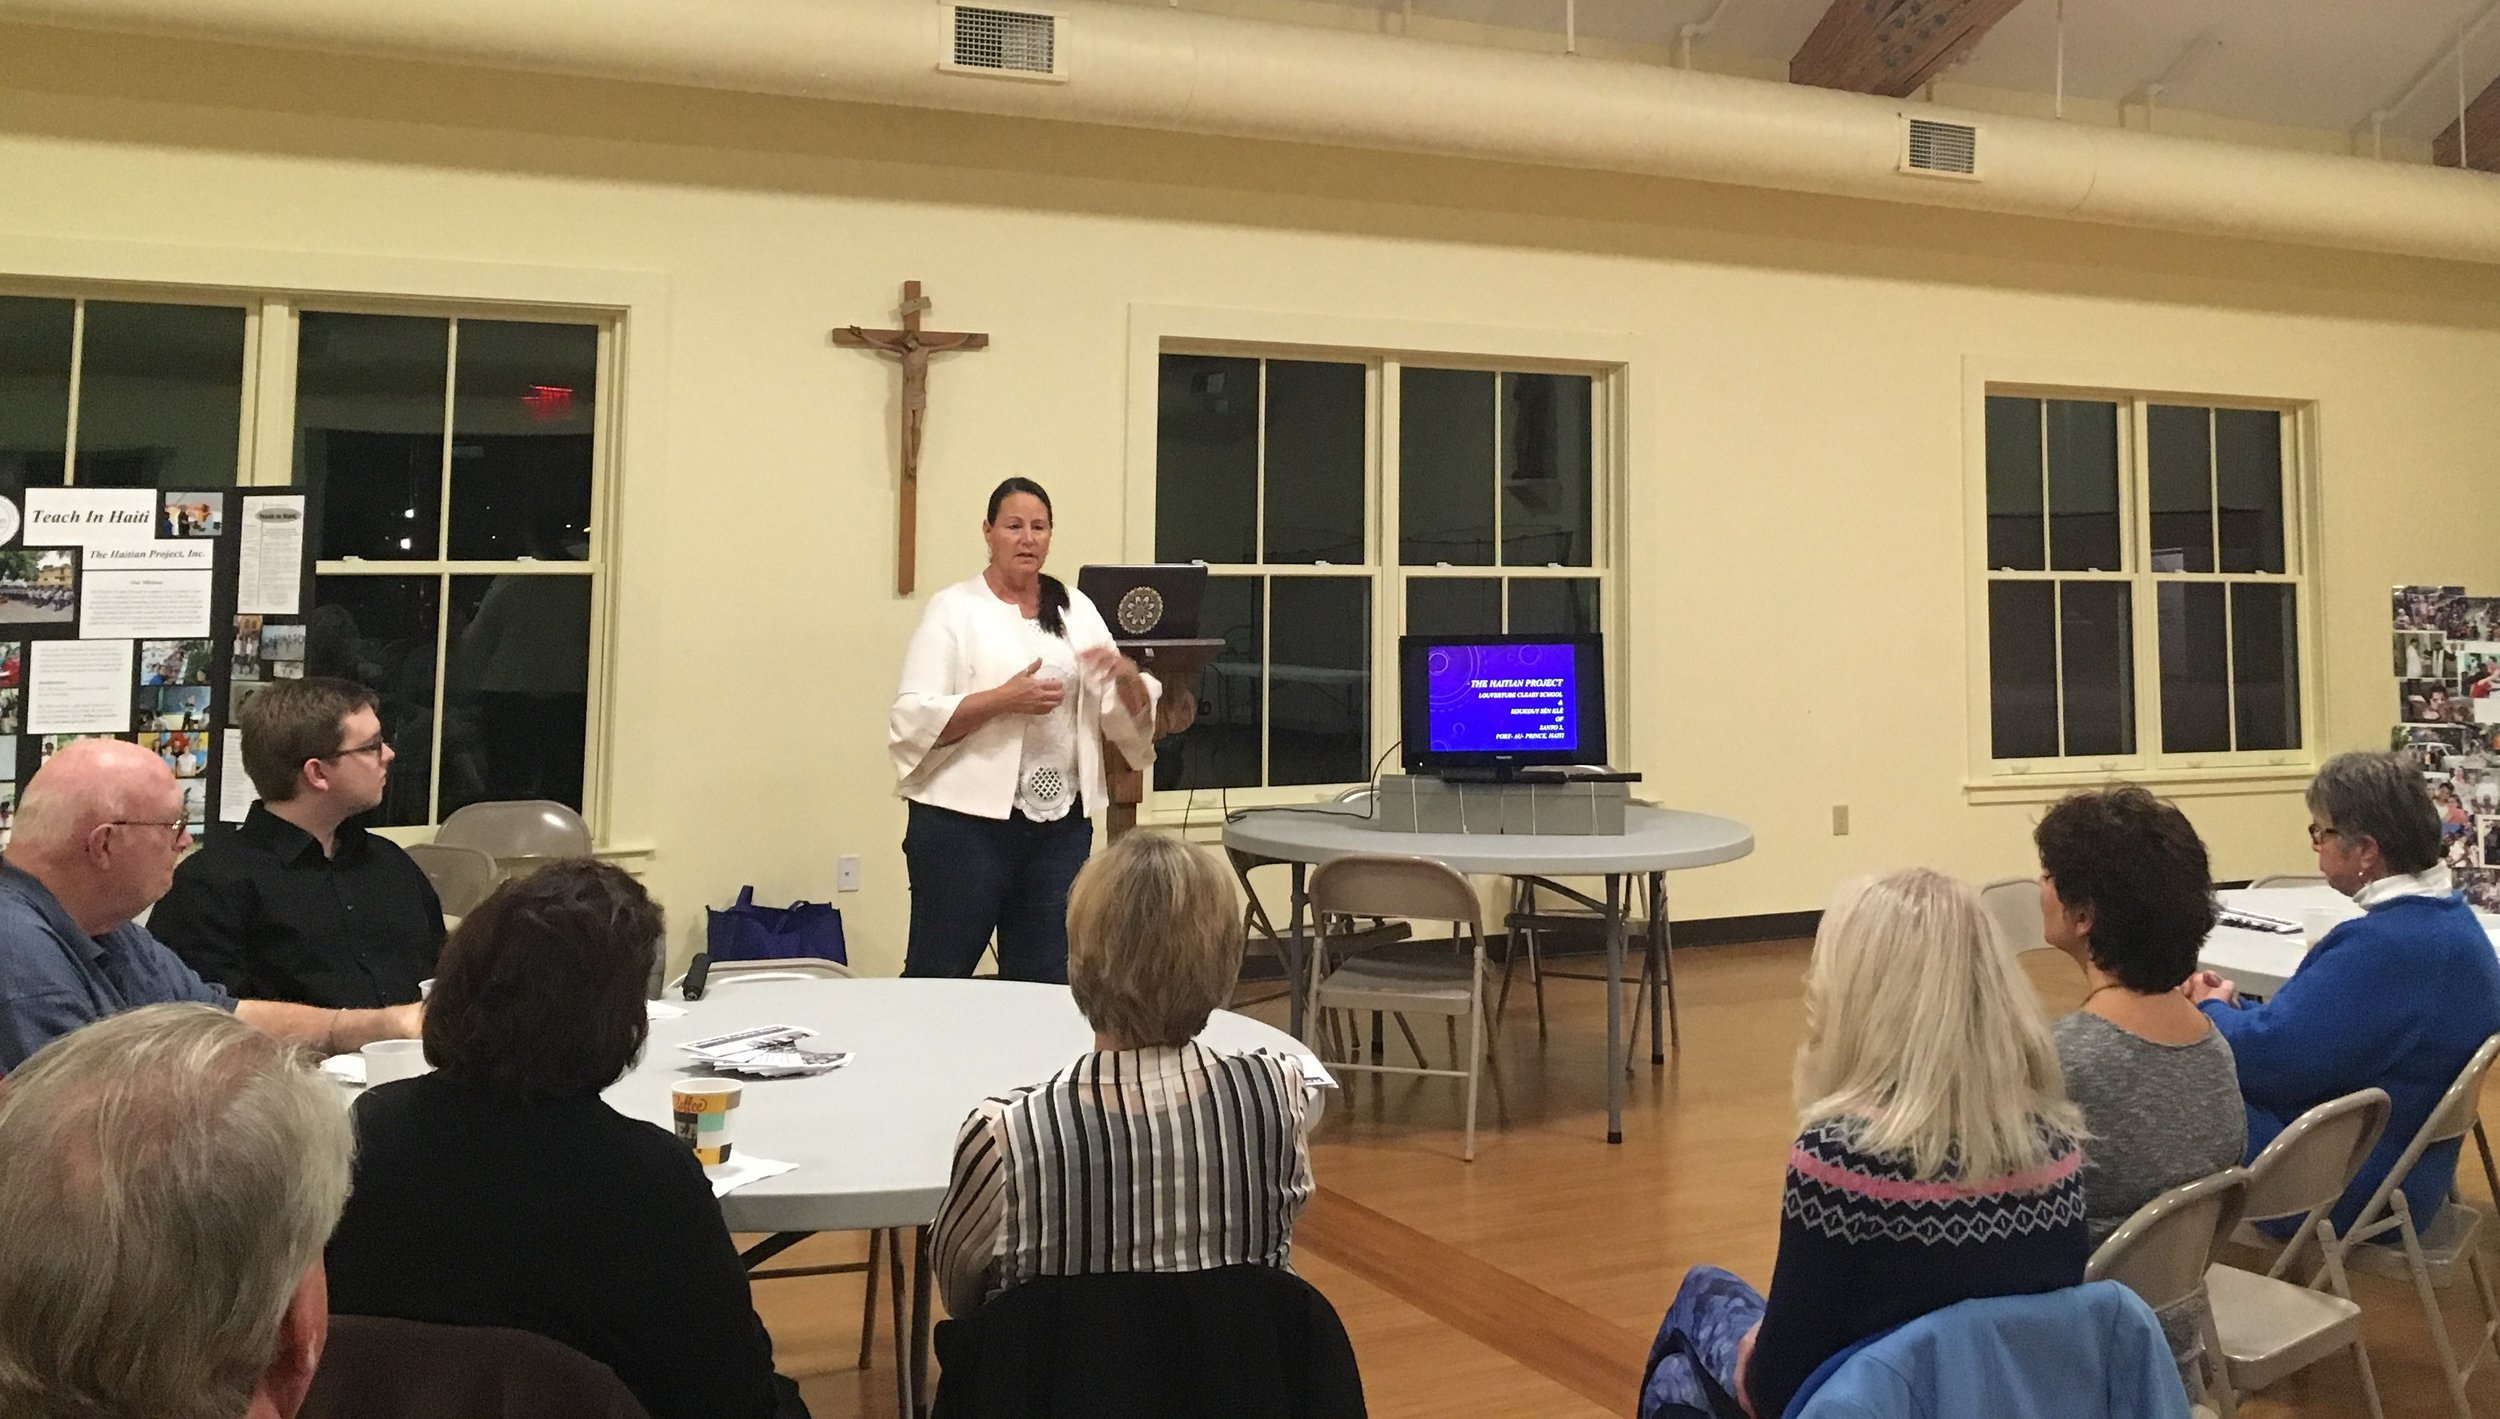 Christina speaks on life as a missionary in Haiti to a recent parish gathering.